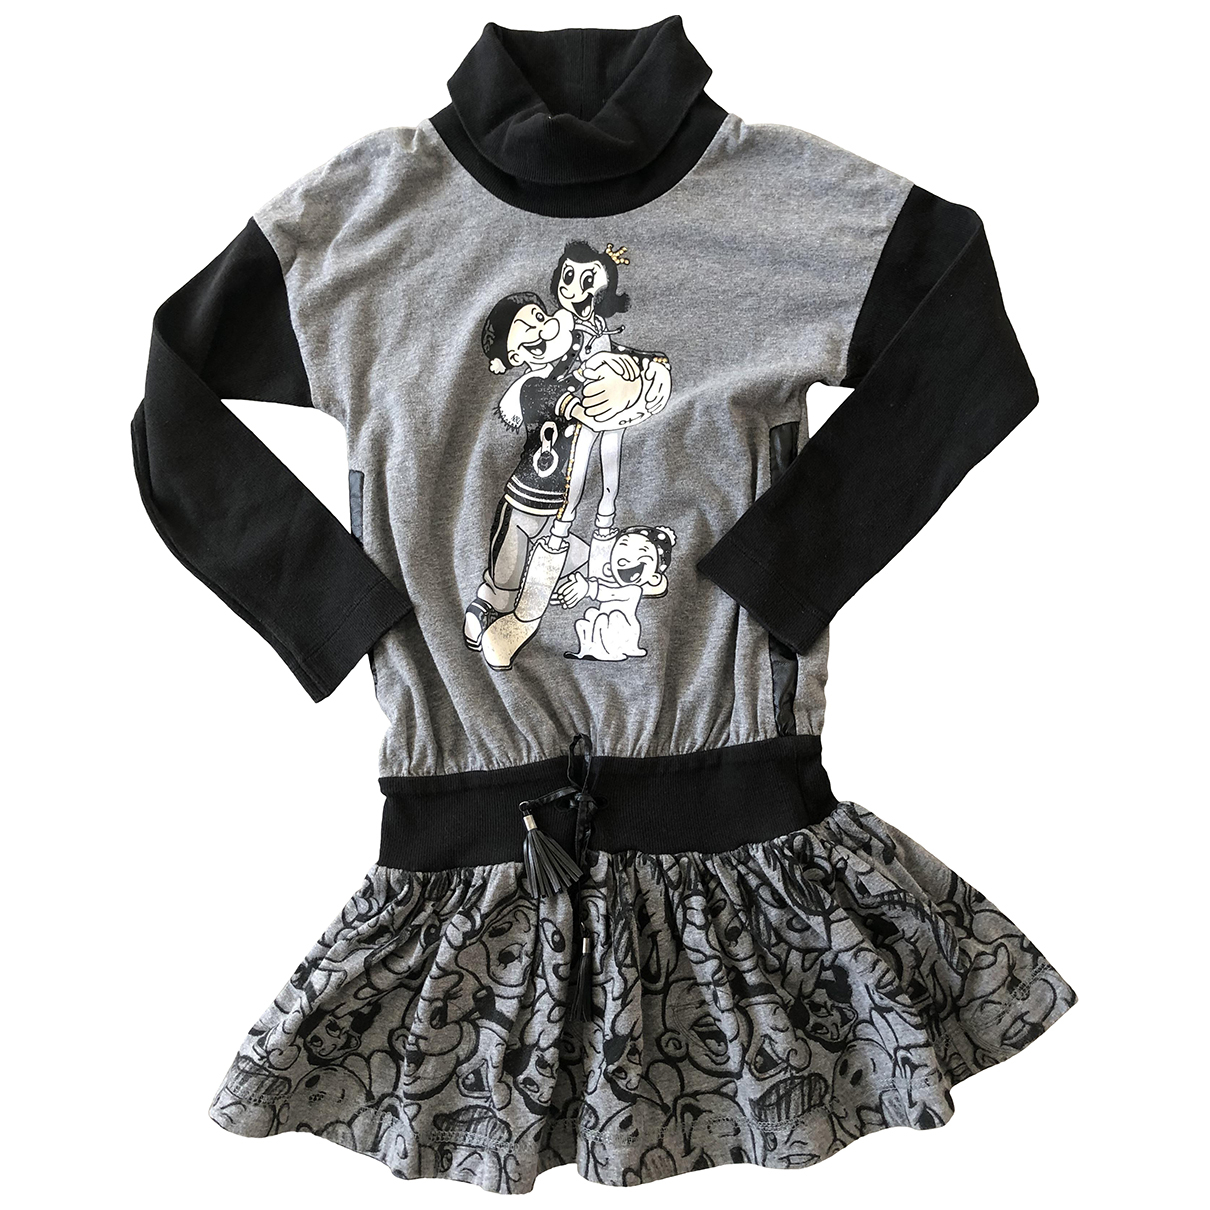 Monnalisa N Grey Cotton dress for Kids 10 years - until 56 inches UK